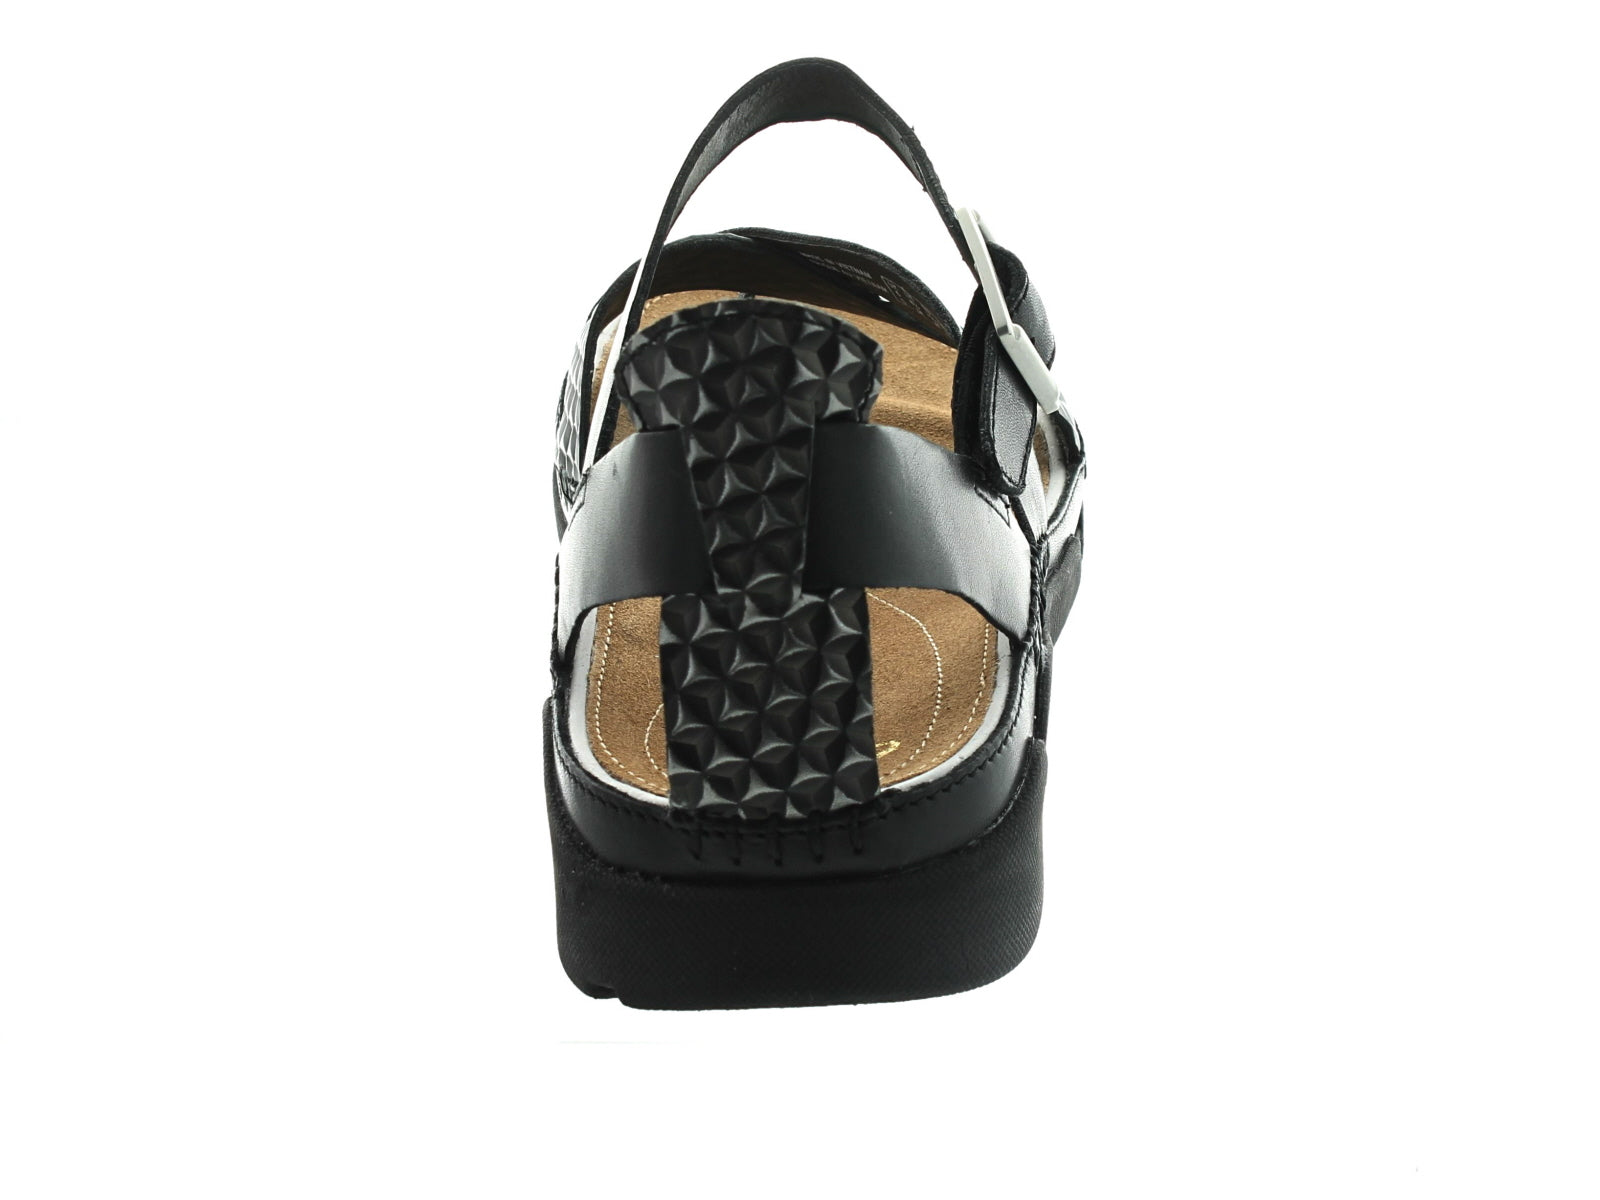 Clarks Tri Ariana in Black Combi back view